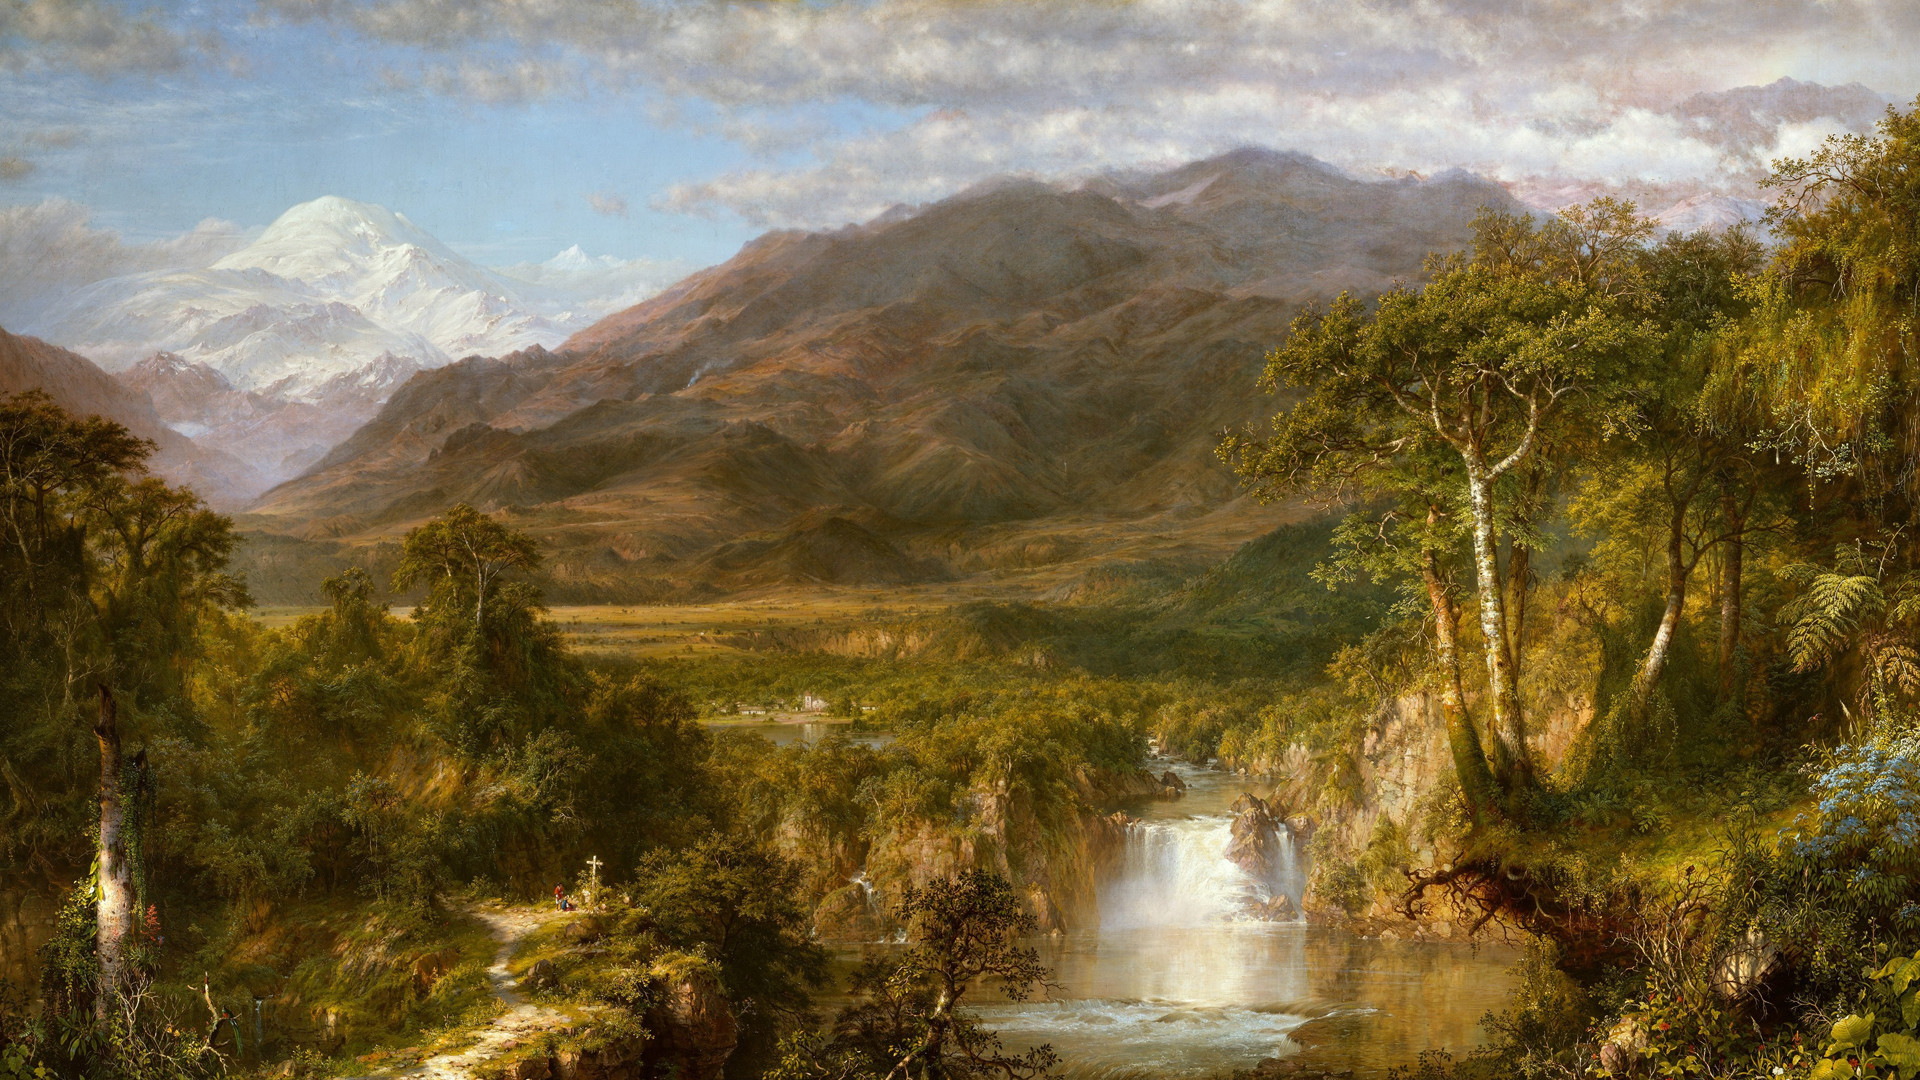 279 2794429 famous wallpapers for desktop group frederic edwin church